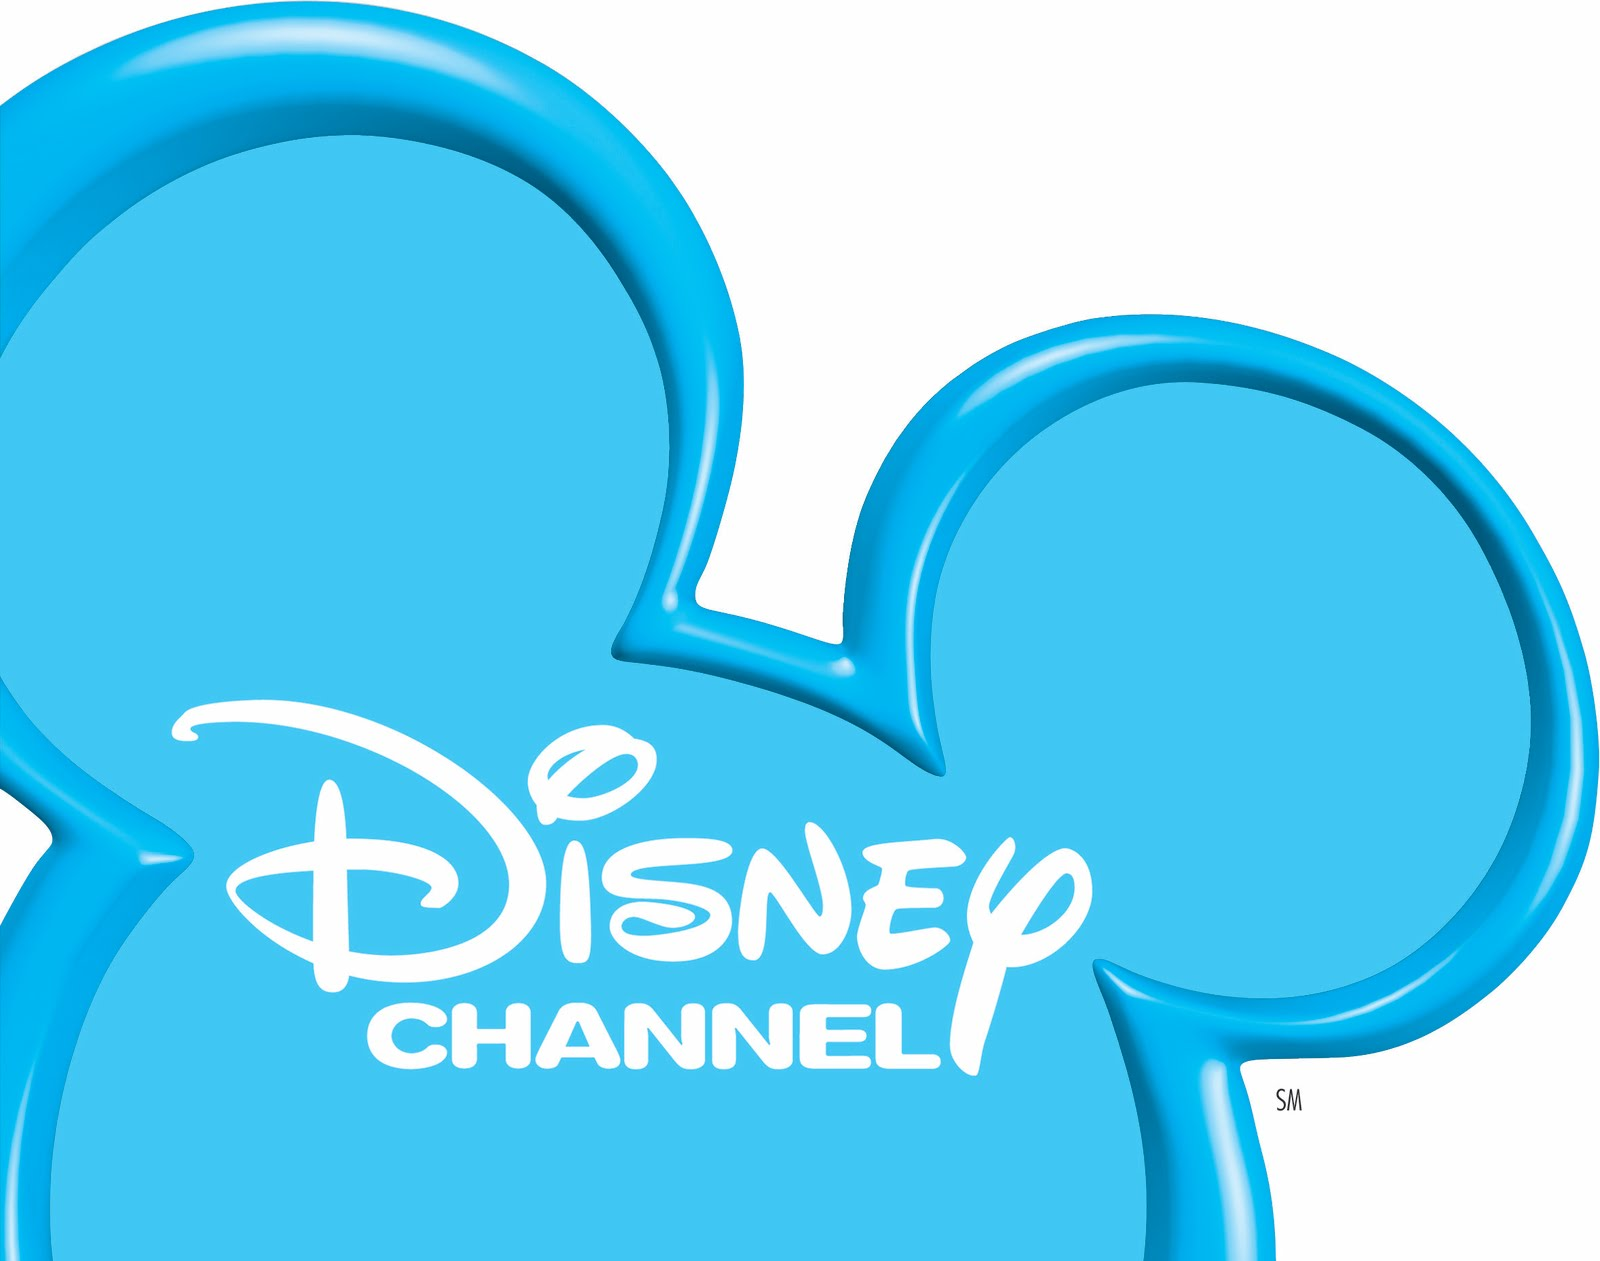 Disney Logo 608 Hd Wallpapers in Logos   Imagescicom 1600x1261